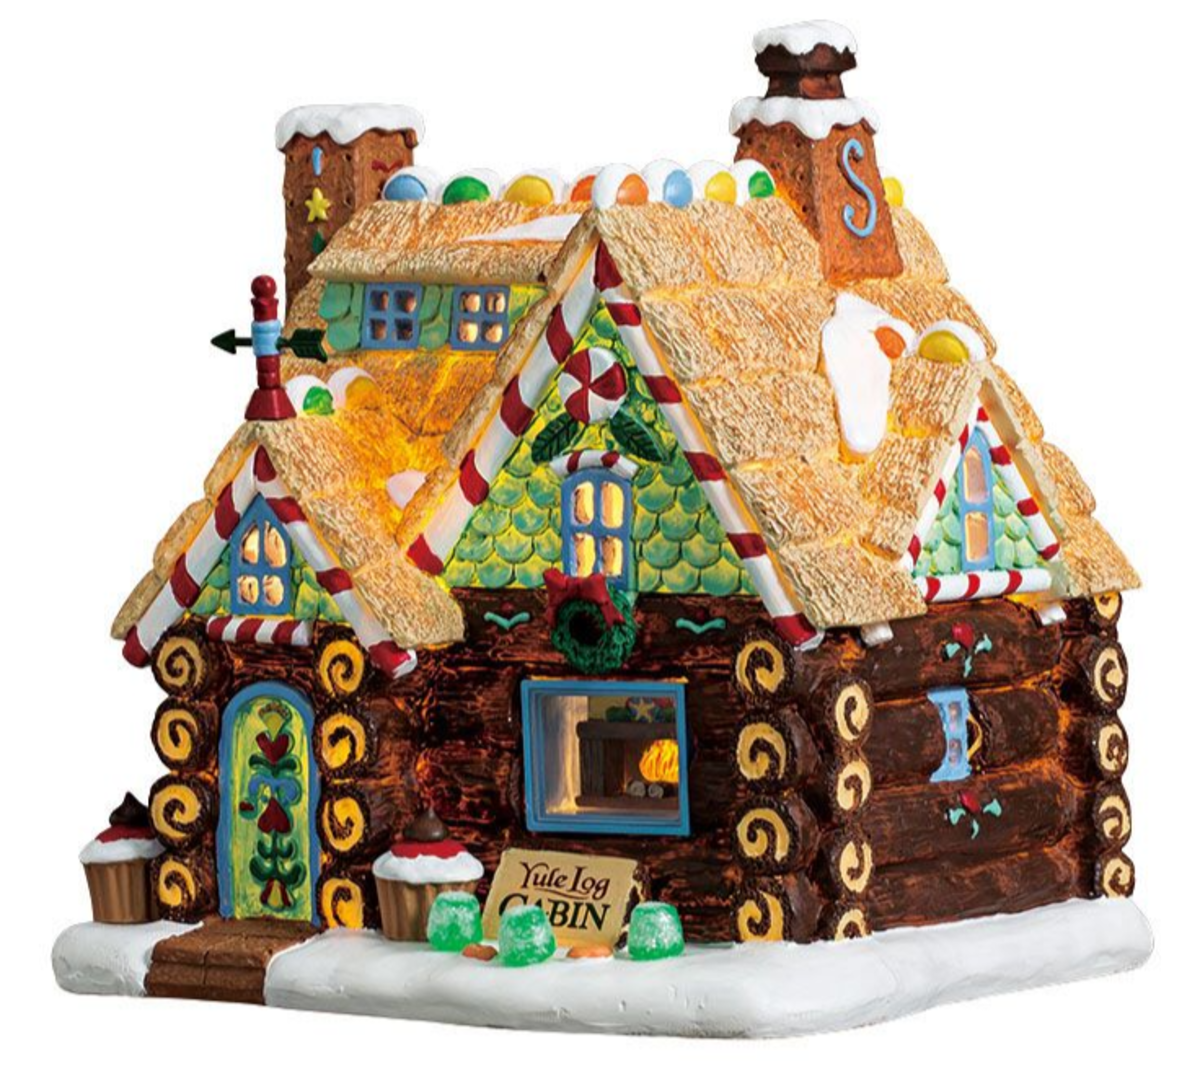 Yule Log Cabin from the Sugar N Spice Collection.